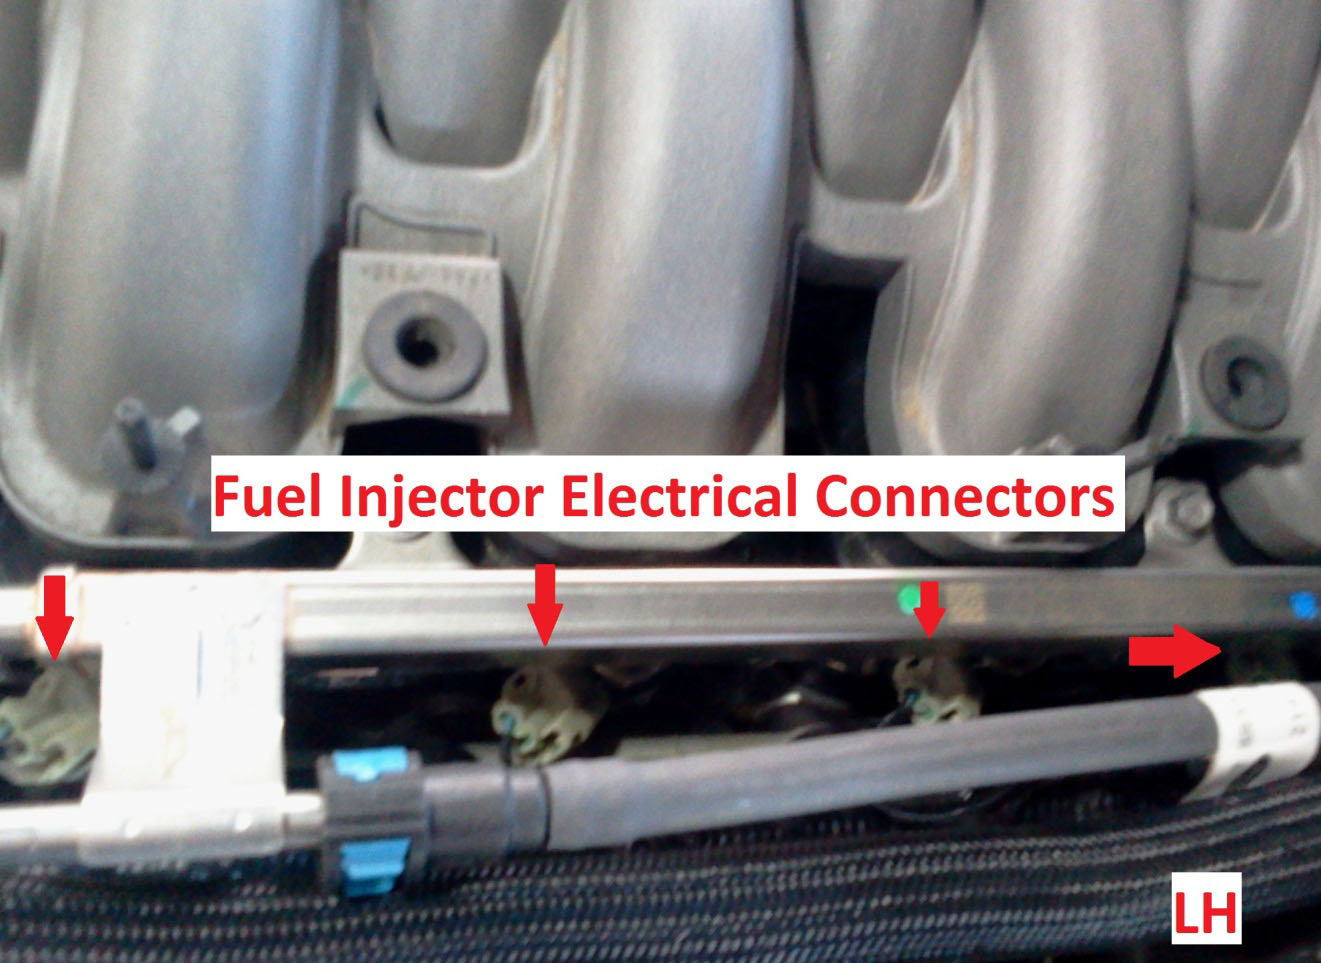 How To Install A Boss 302 Intake Manifold On Your 2011 2013 Mustang Driving Light Wiring Diagram 11 At This Point You Should Depressurize Fuel System Note Safety Goggles Are Recommended When Ready Continue Use The 3 8 And Disconnect